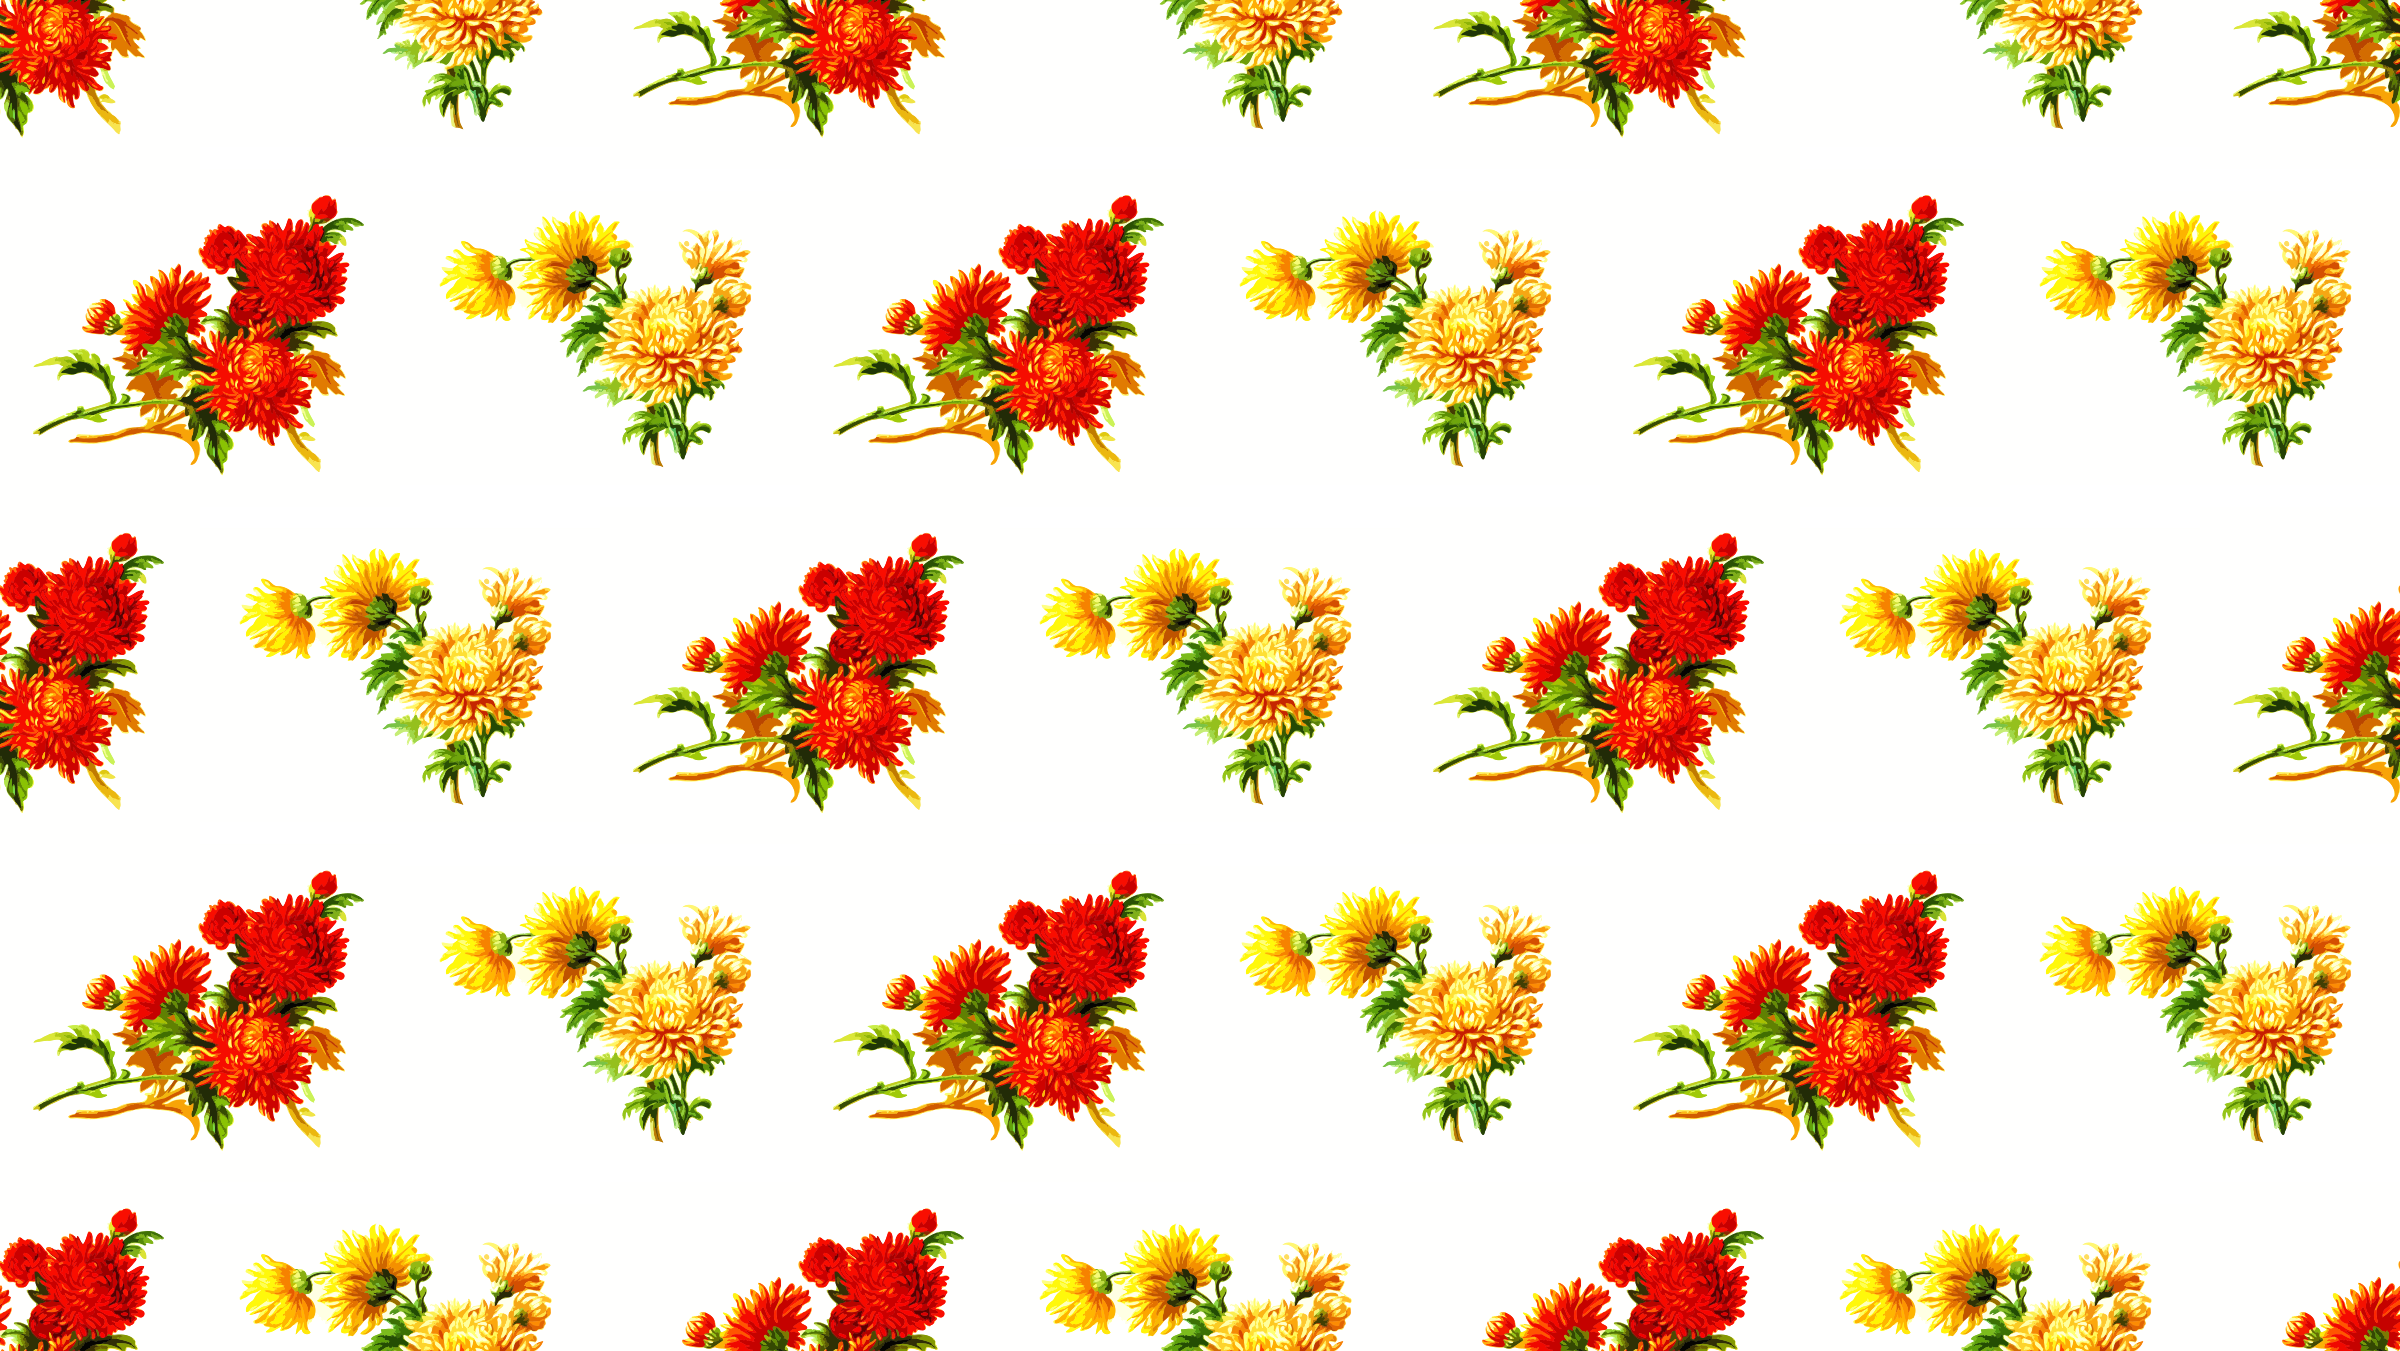 Background pattern 87 by Firkin